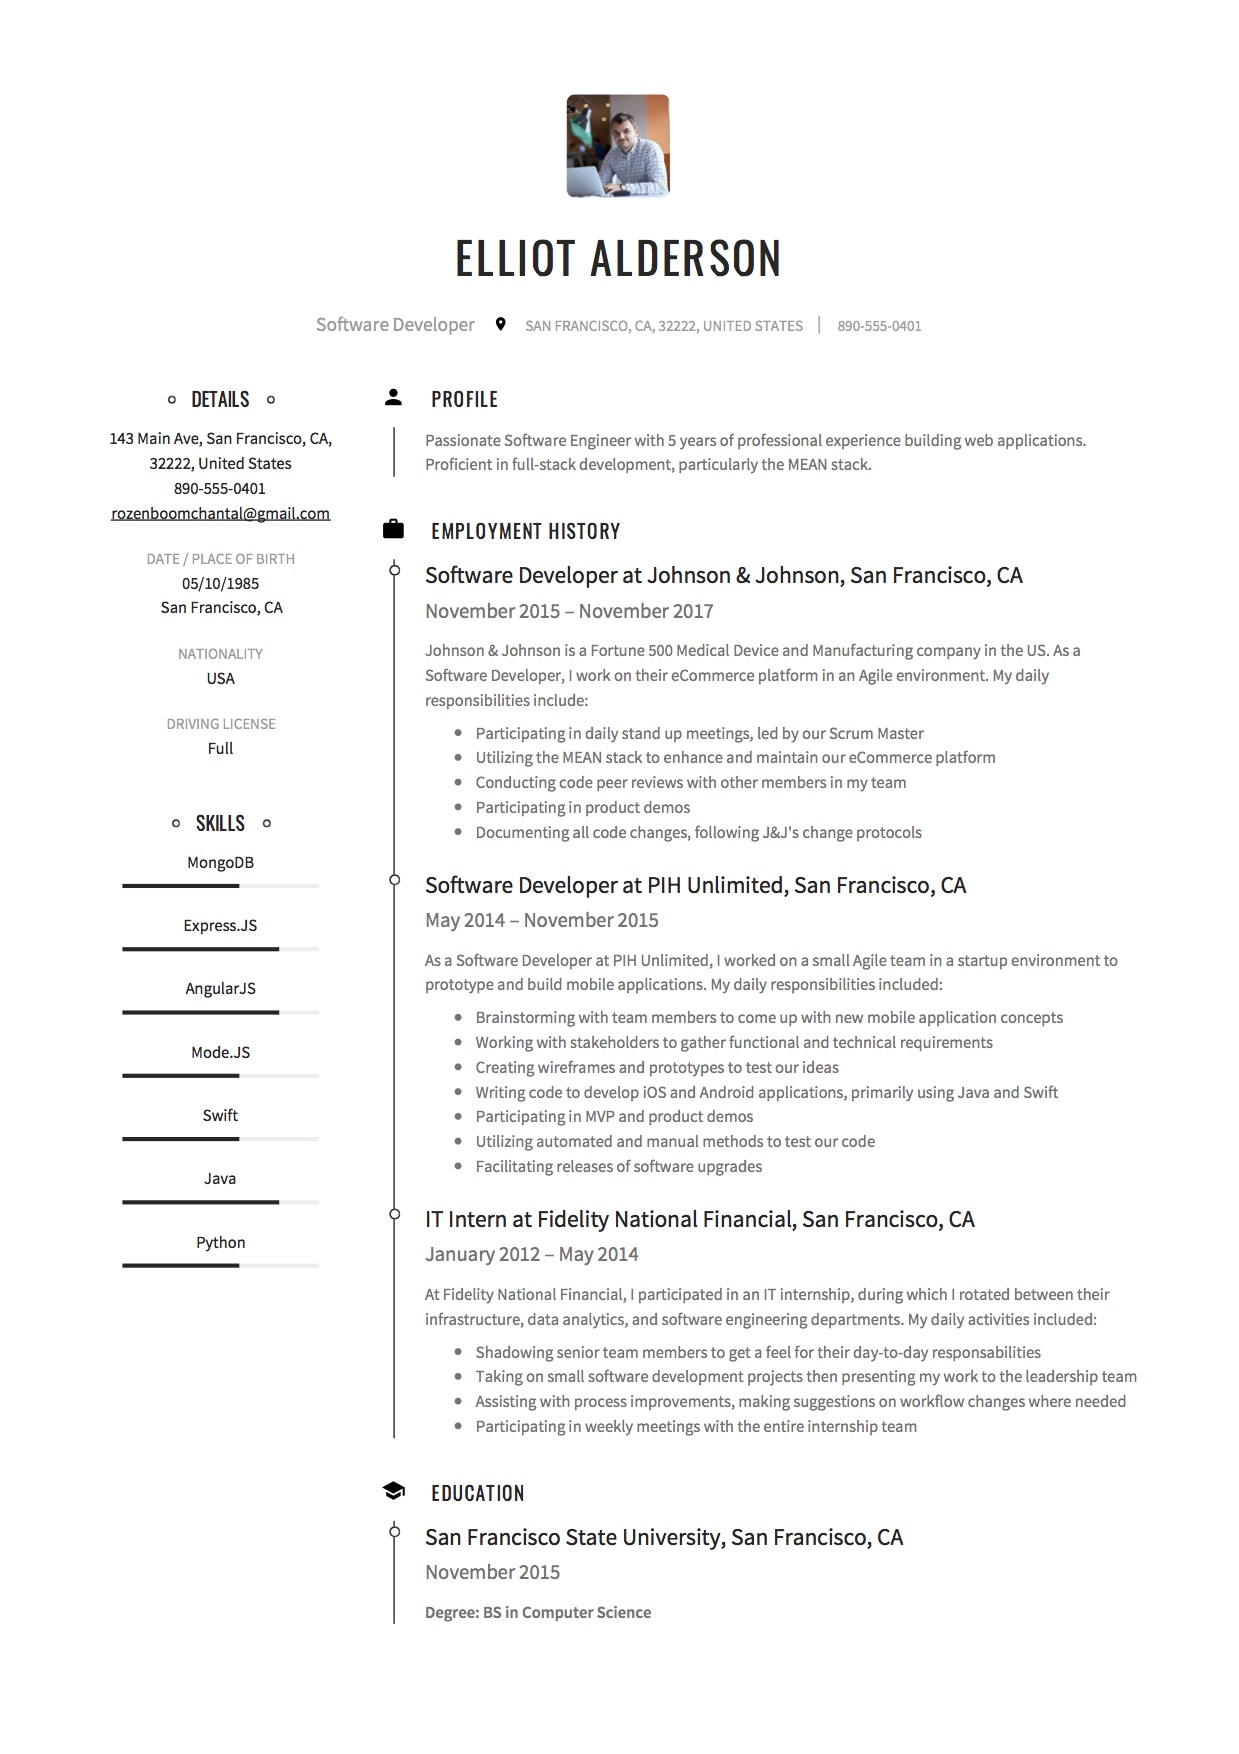 Resume Format For 1 Year Experienced Software Developer Software Developer Resume Example Ideasplataforma